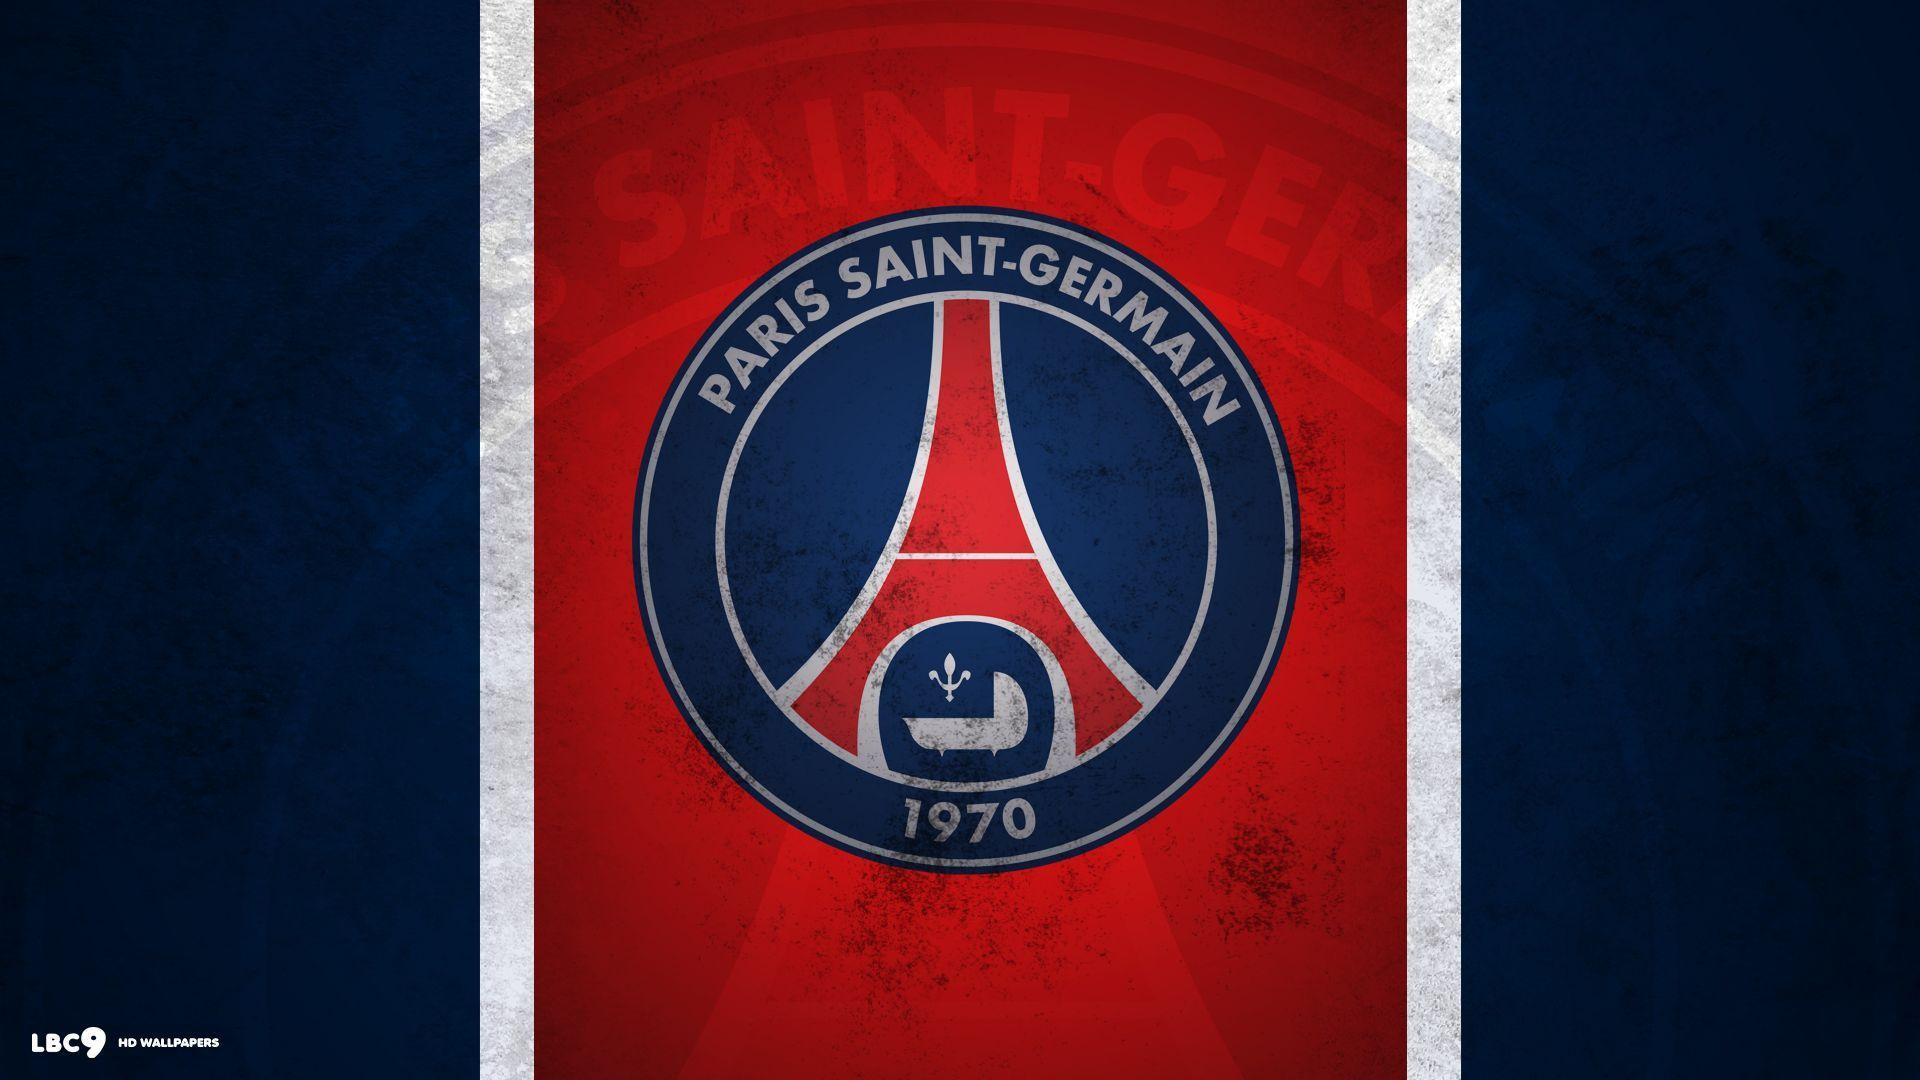 Paris Saint Germain Wallpapers